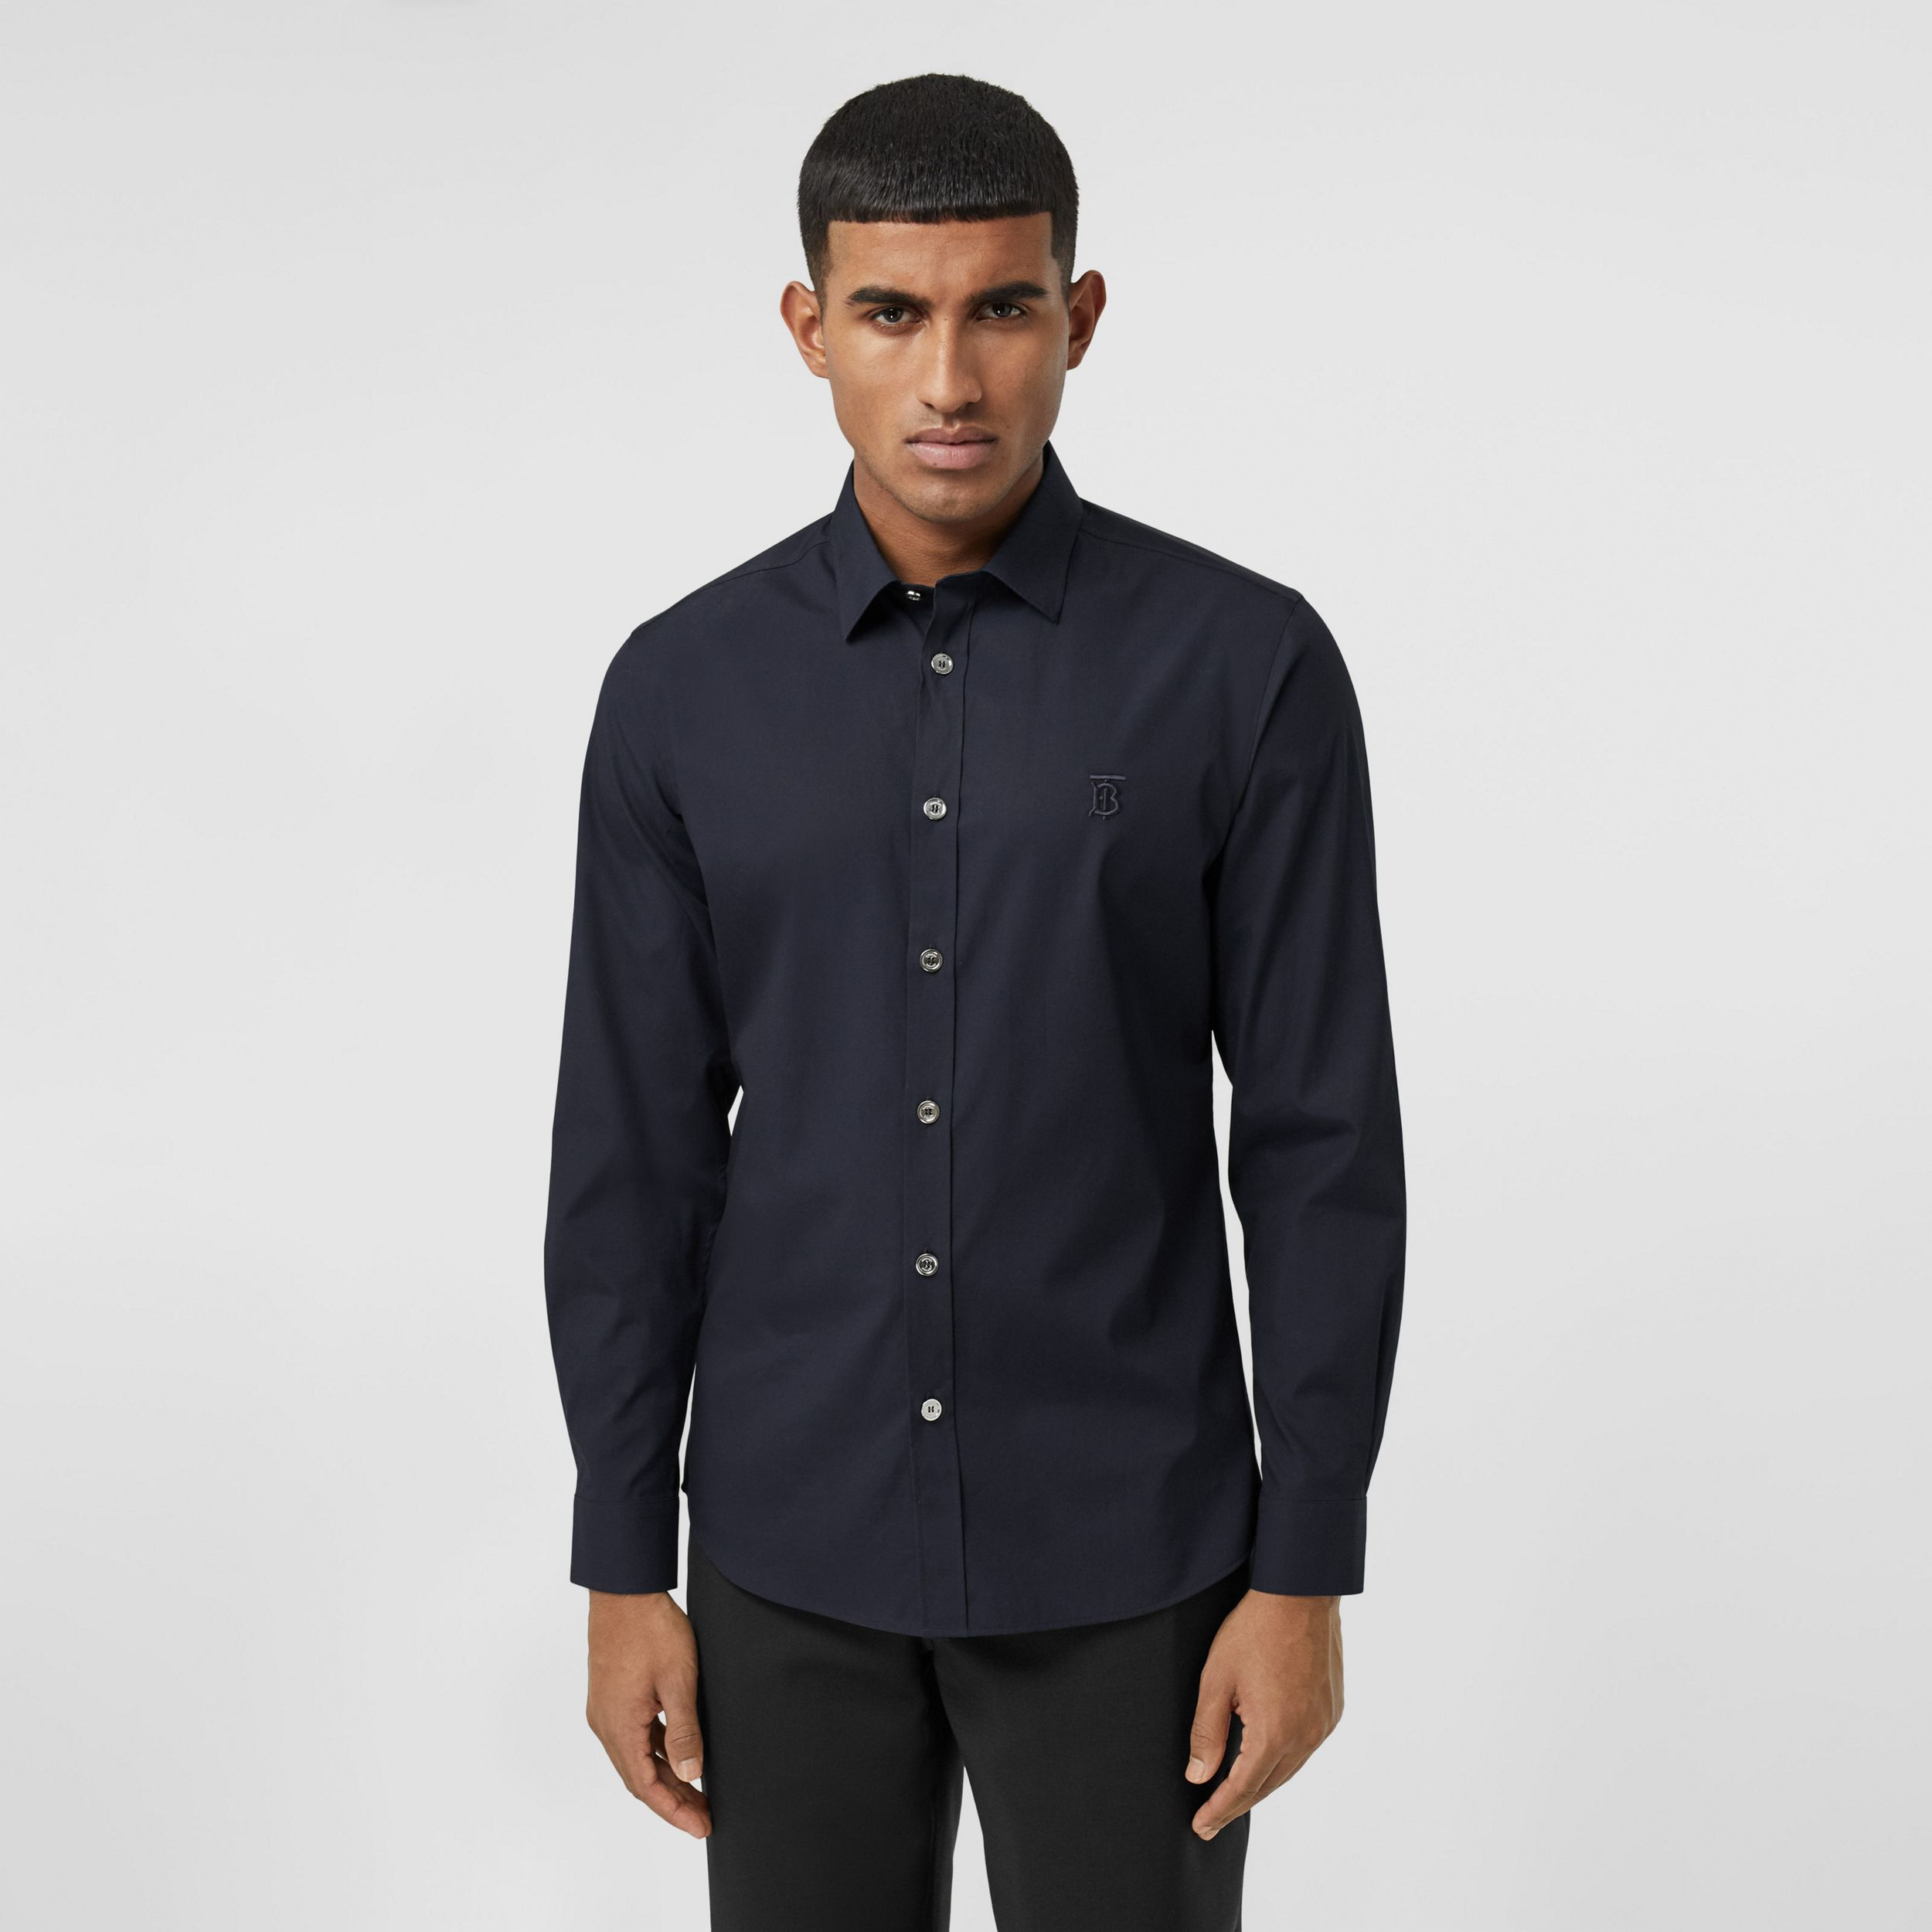 Monogram Motif Stretch Cotton Poplin Shirt in Navy - Men | Burberry - 1